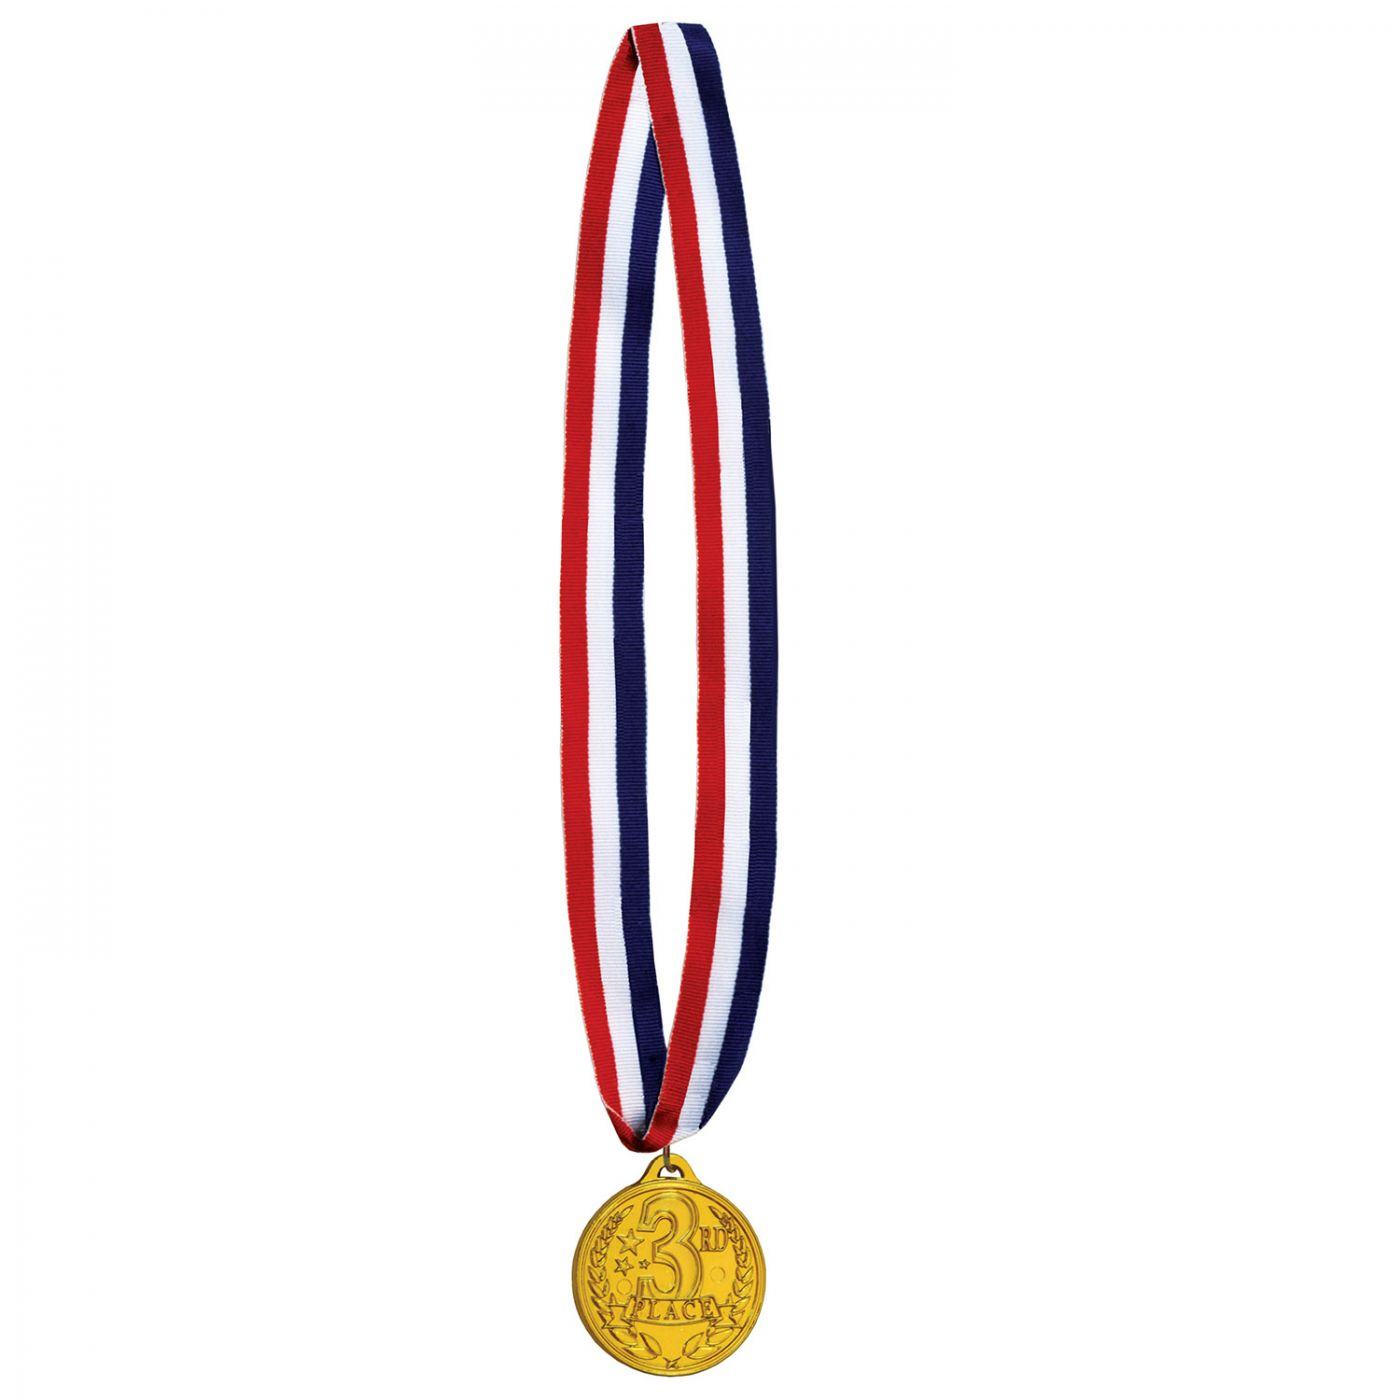 Image of 3rd Place Medal w/Ribbon